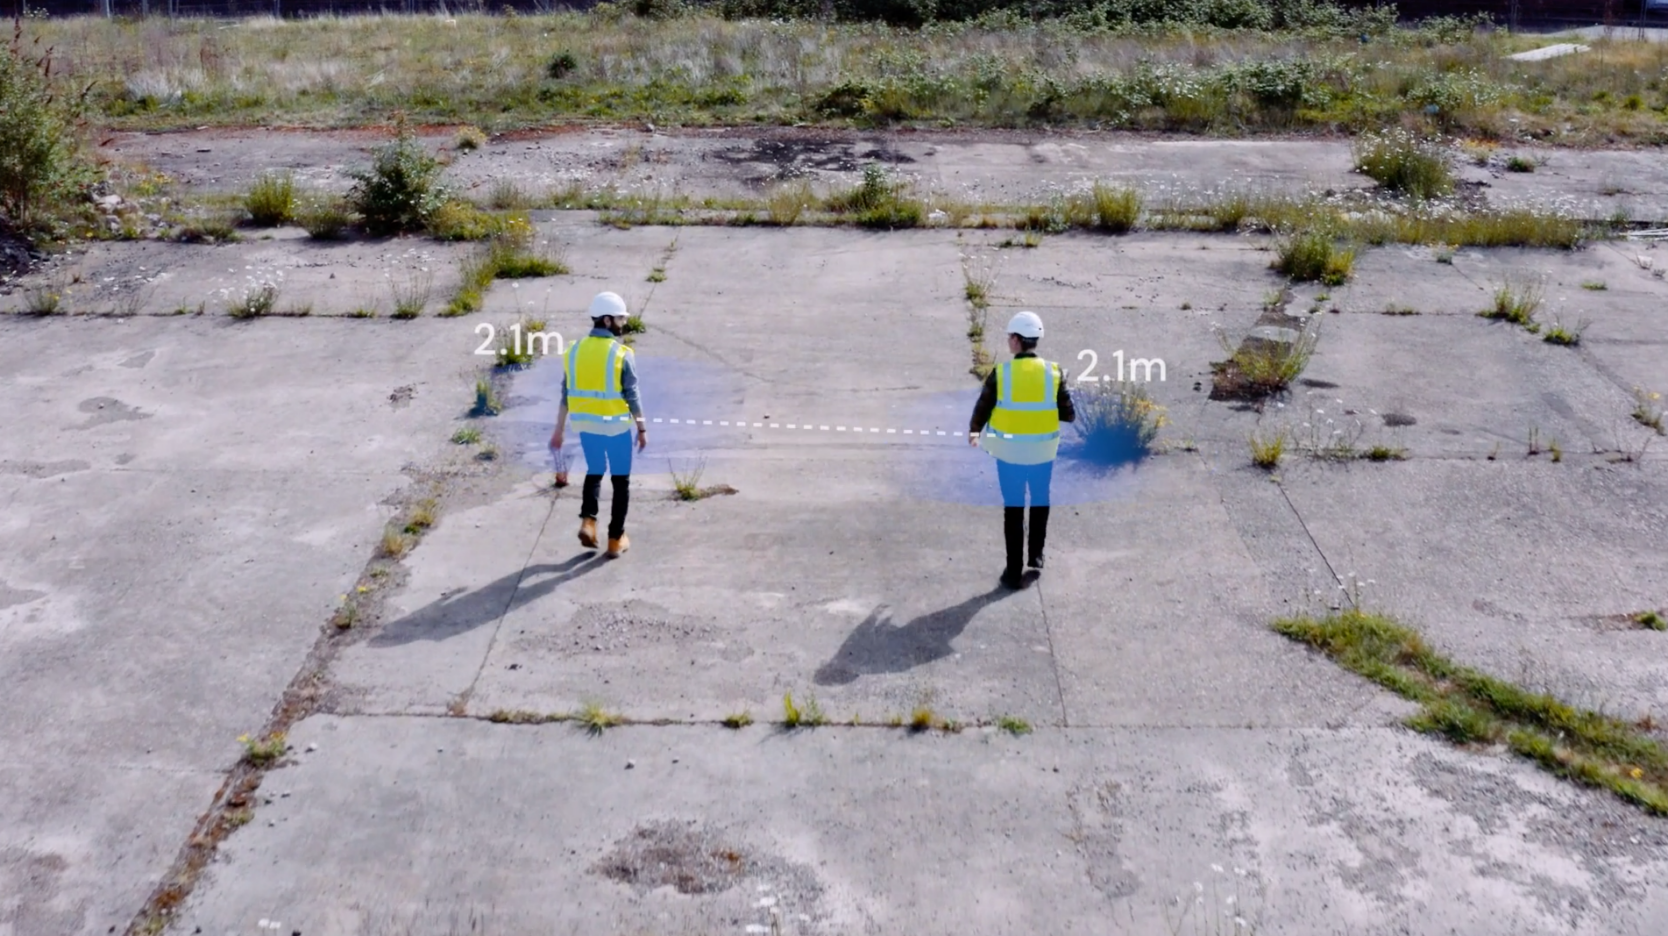 Two people wearing PPE on a building site walking at a distance of 2m apart to maintain social distancing.